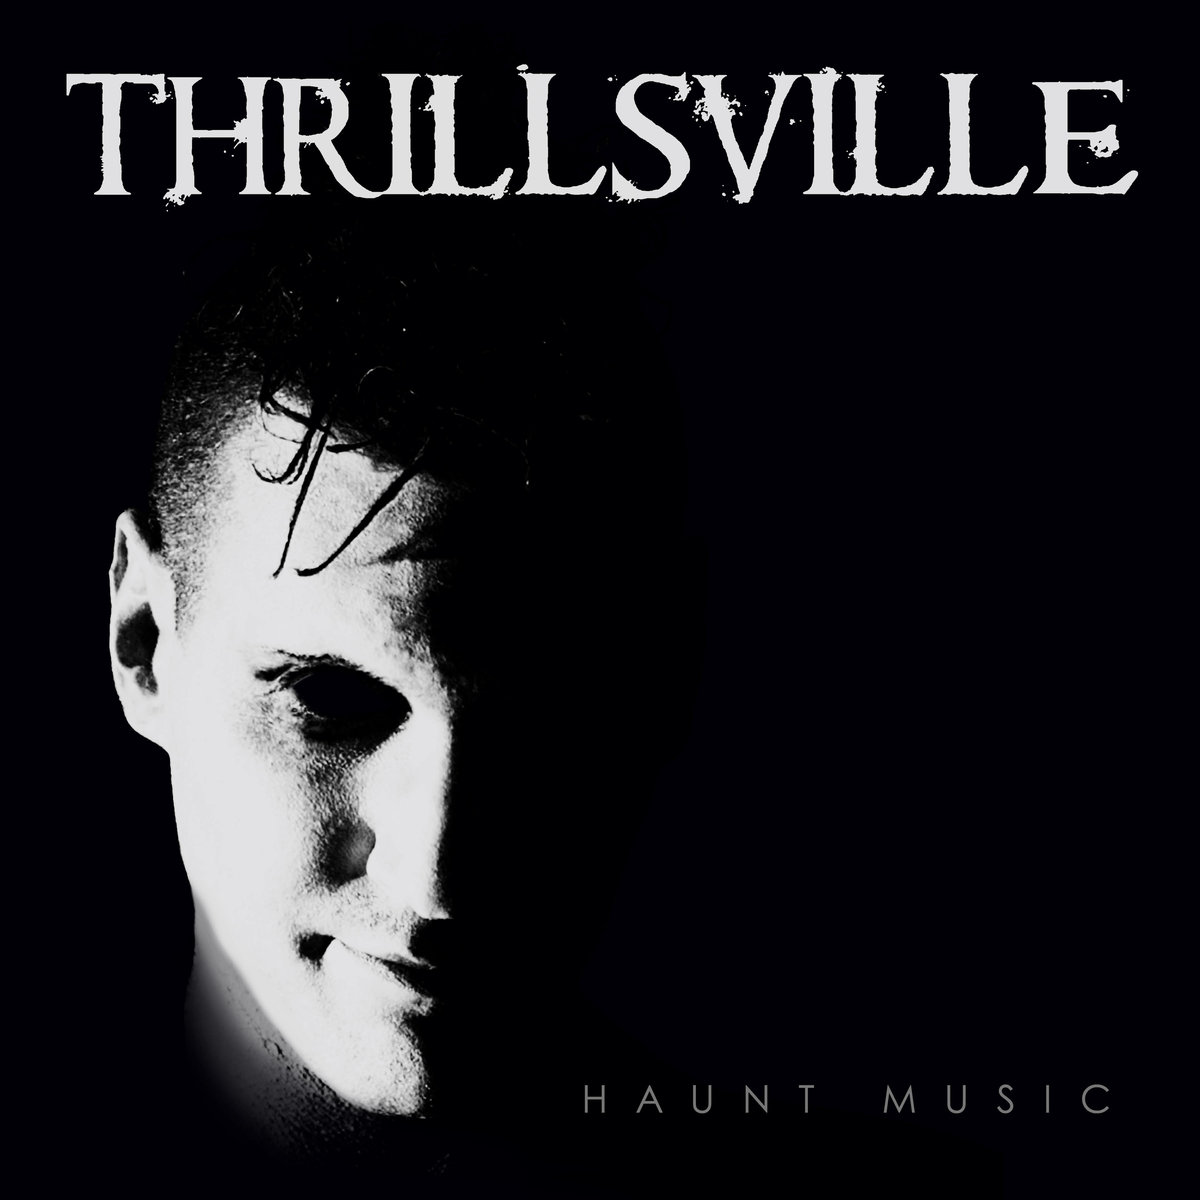 Chronique | Thrillsville - Haunt Music